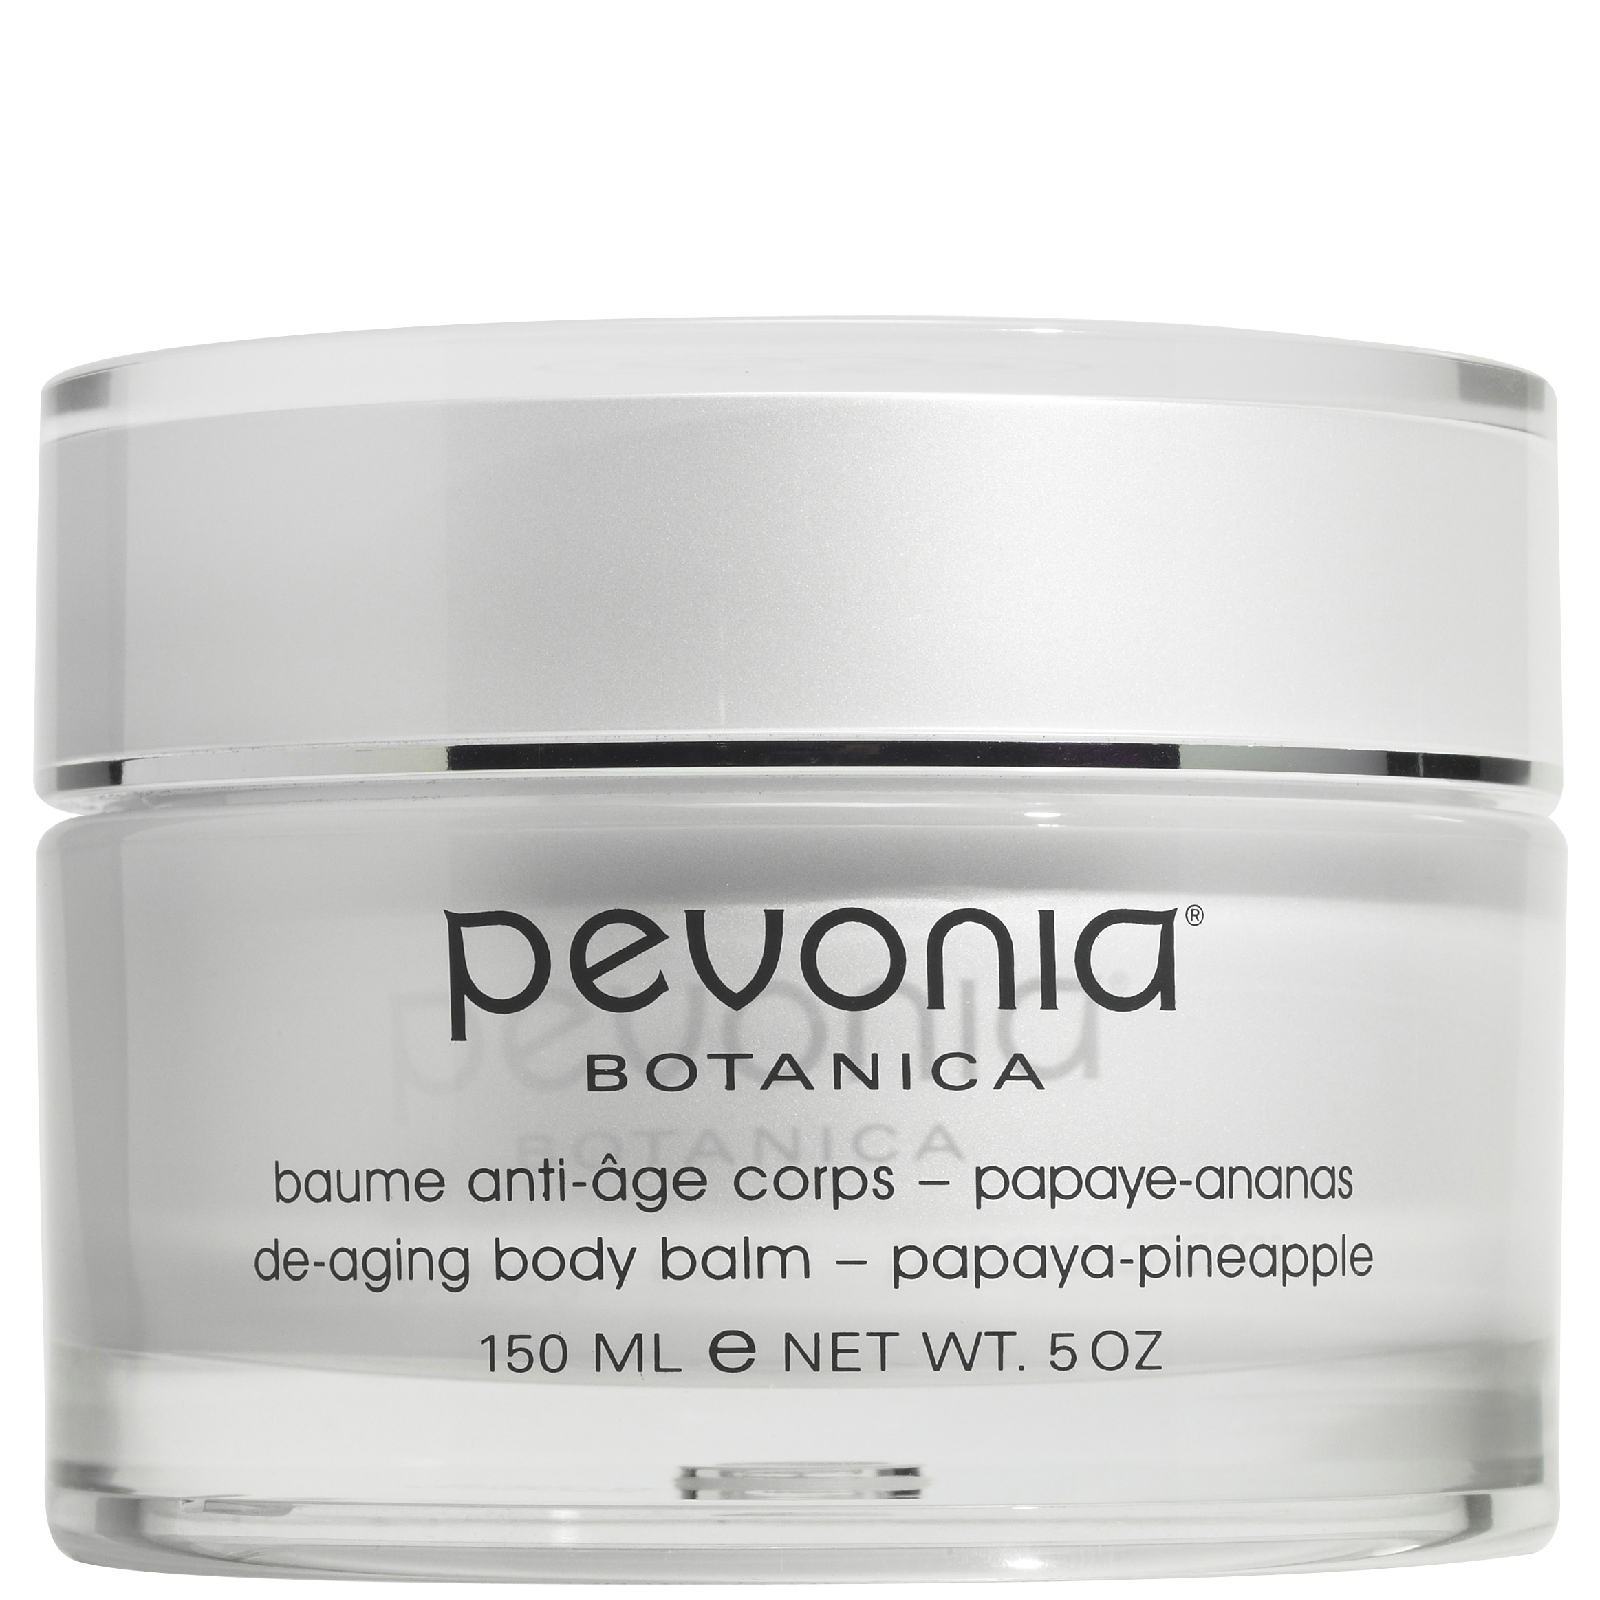 Pevonia De-Aging Body Balm Papaya Pineapple